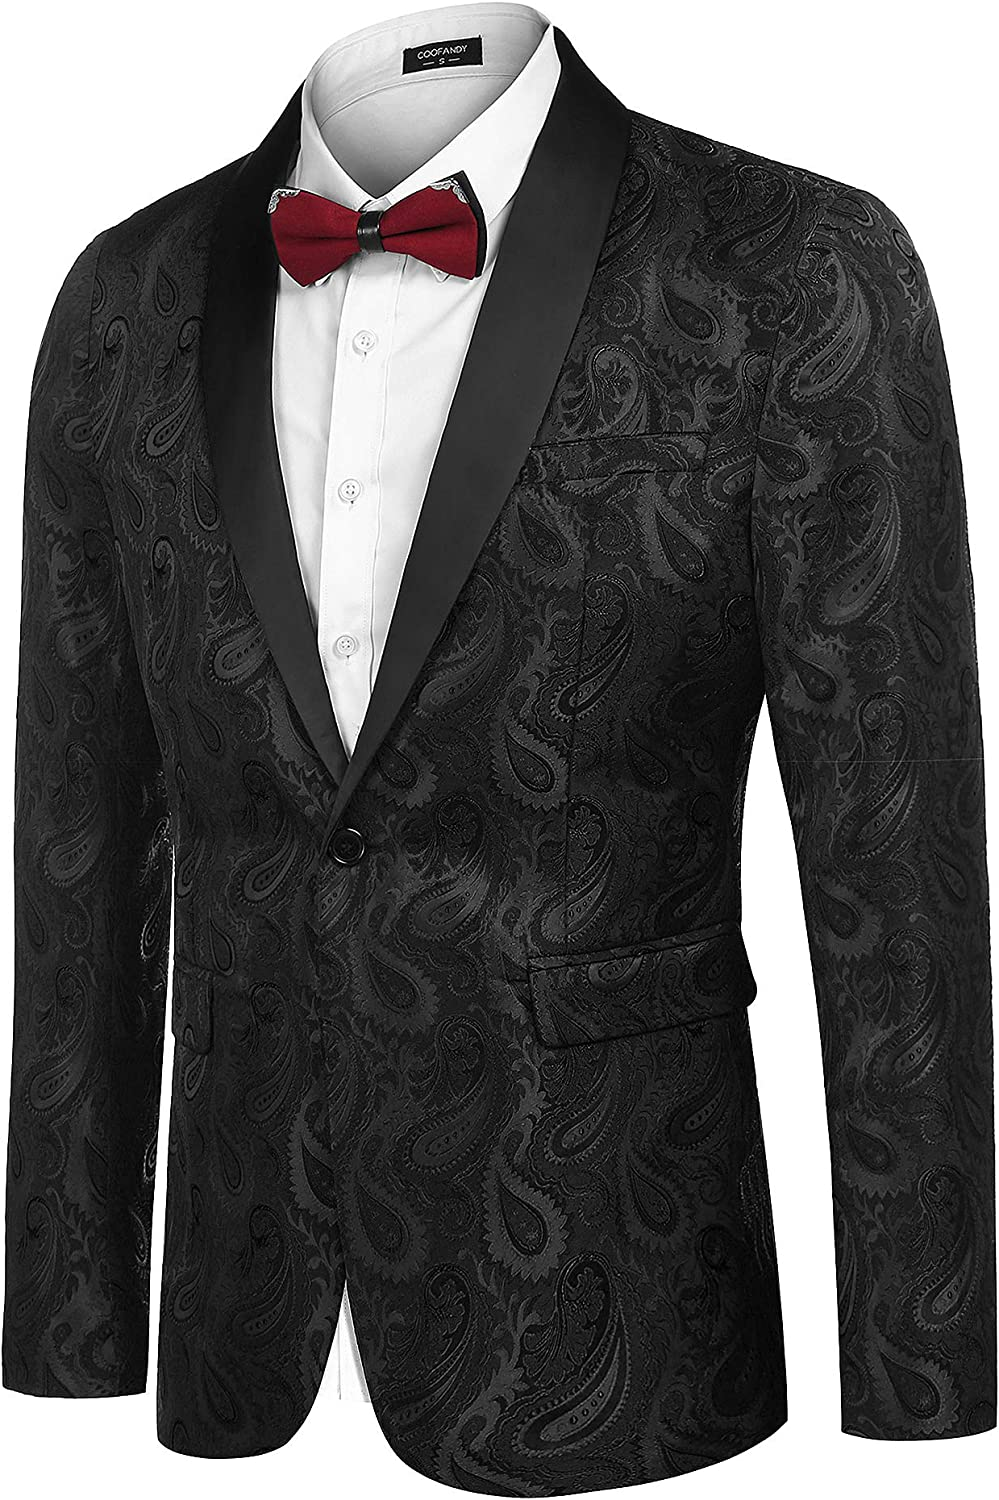 Coofandy Blazer Uomo Casual Slim Fit Paisley Floreale One Button Suit Blazer Prom Tuxedo Wedding Party Giacche